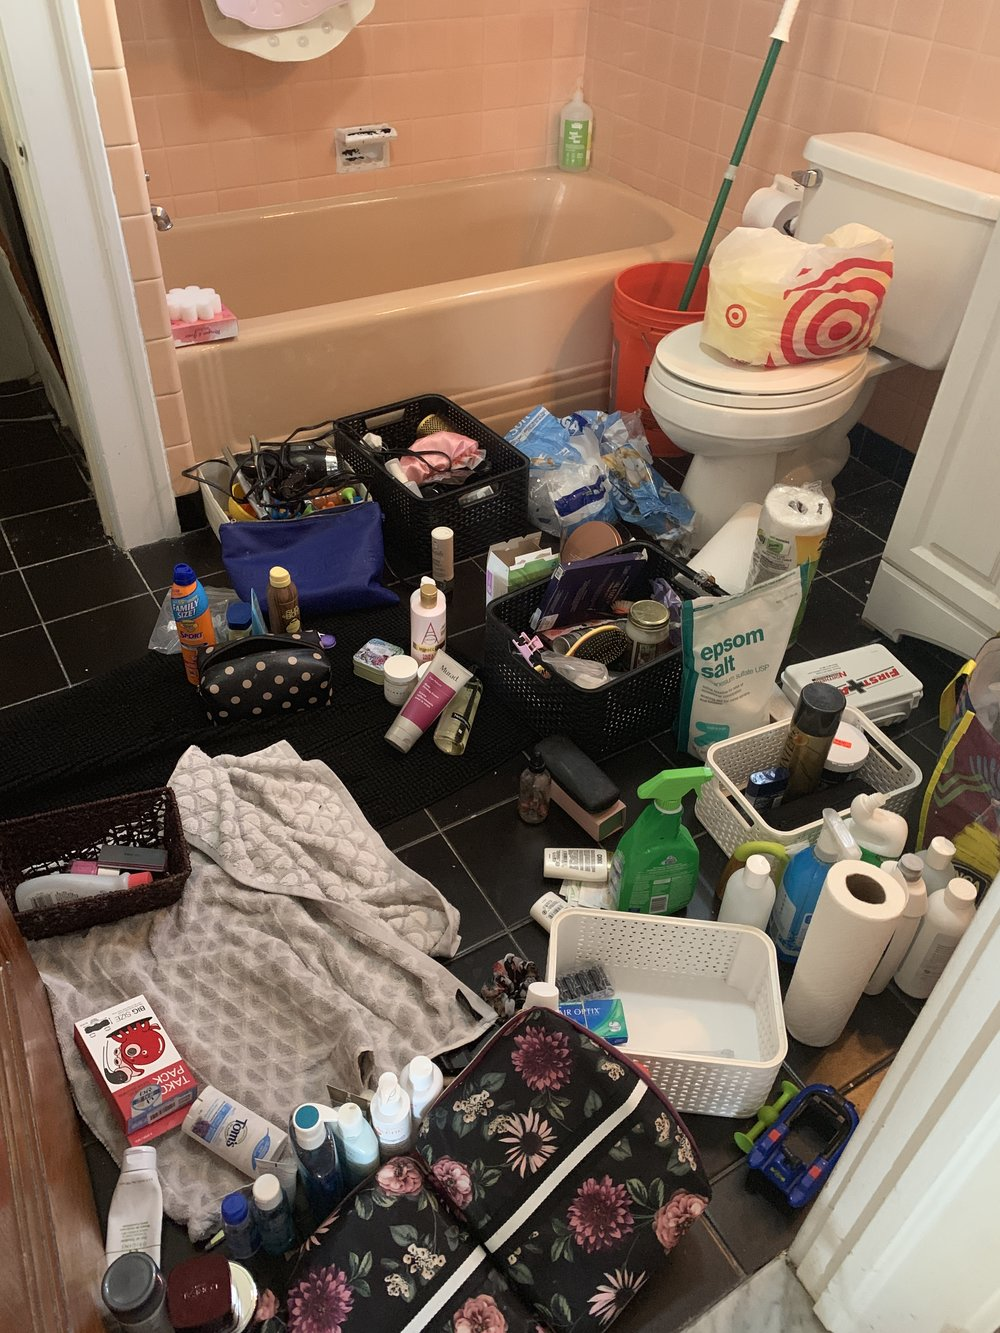 What a mess of a bathroom! #becomingaminimalist